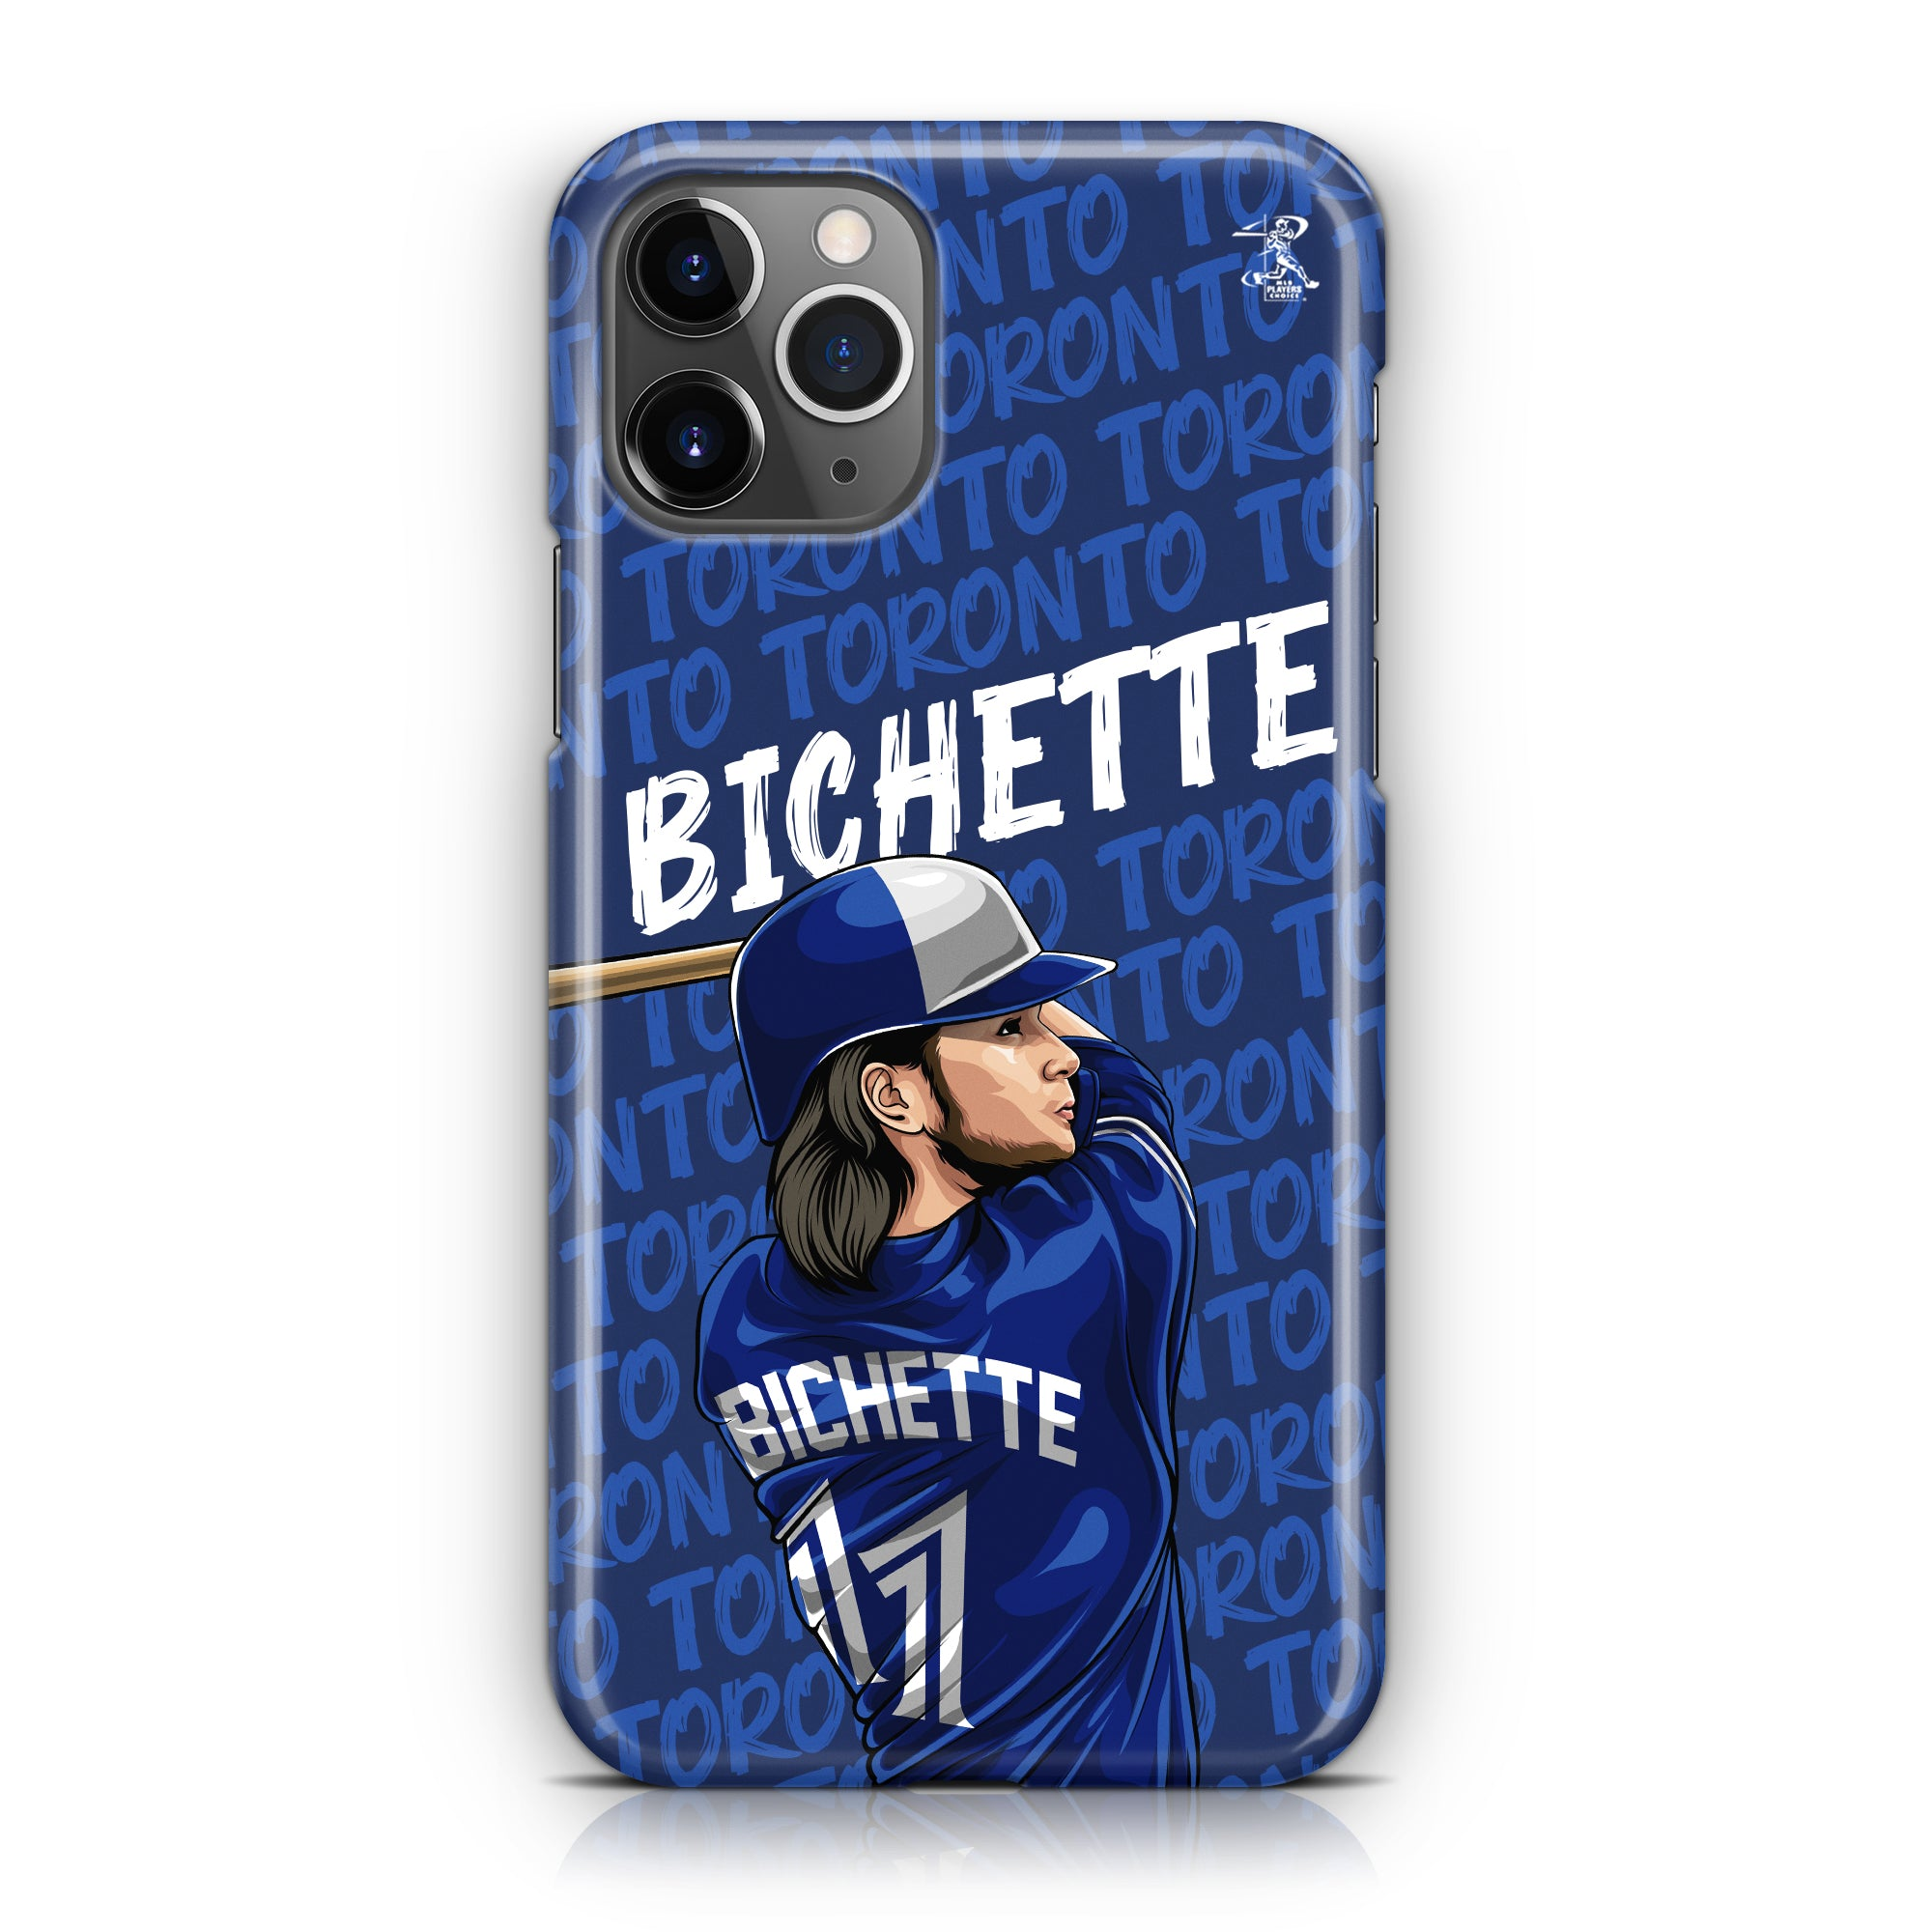 Bichette Star Series 2.0 Case